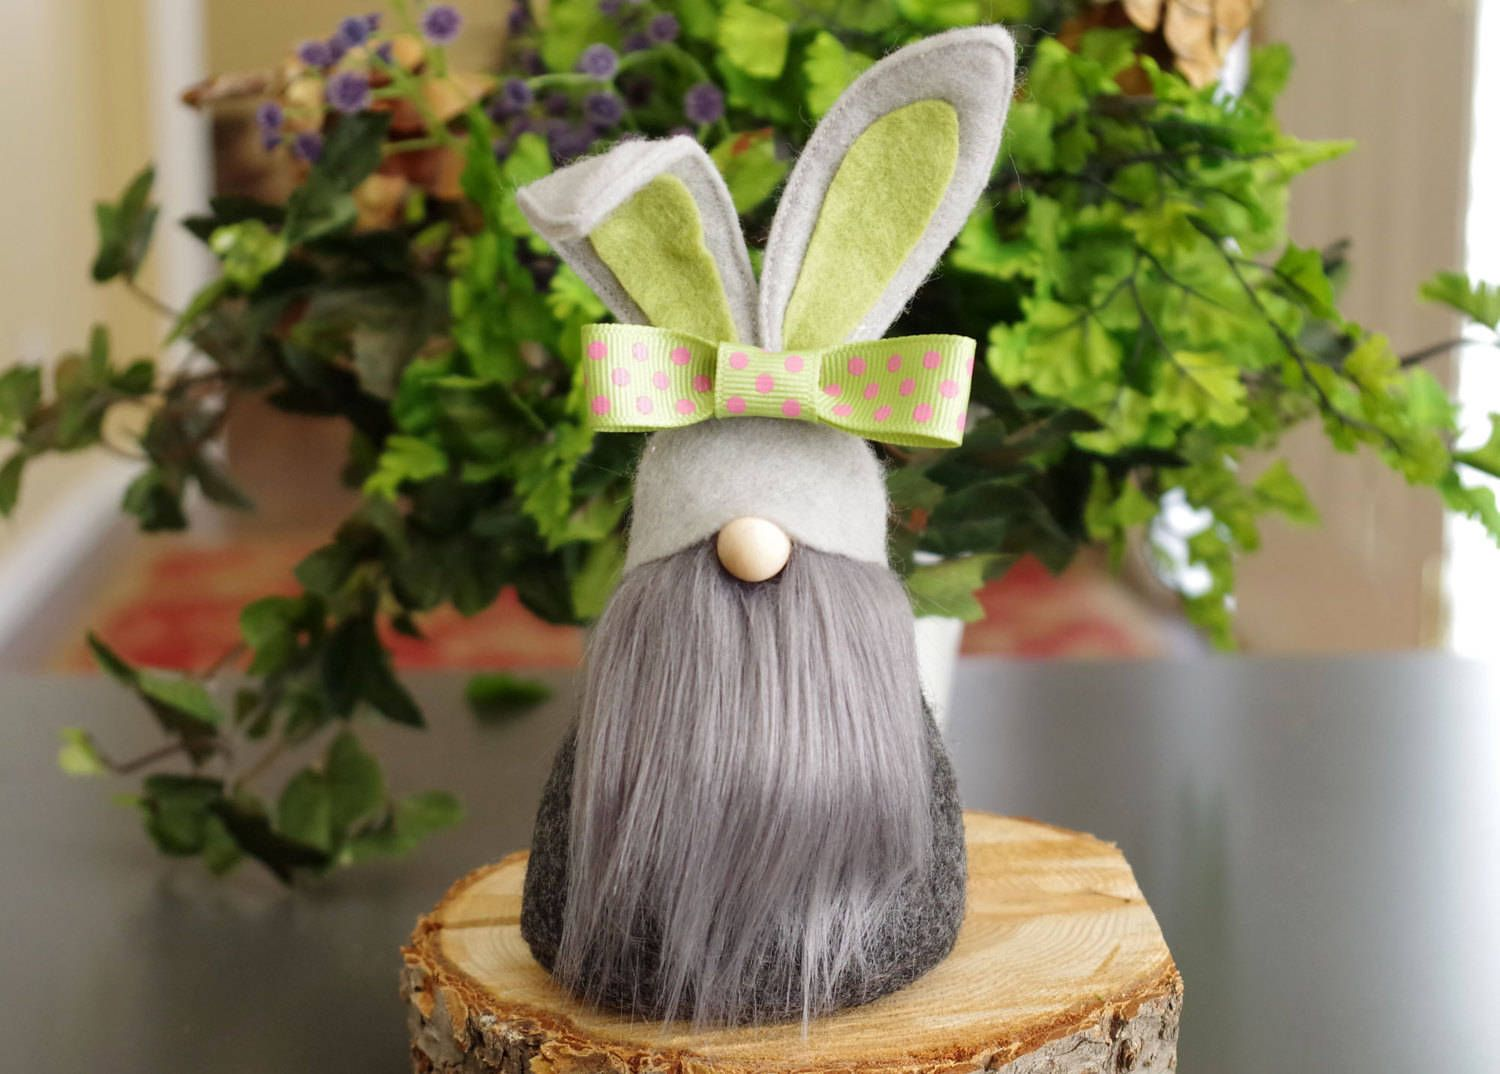 Bunny gnome nordic gnome easter eggs easter basketeaster darling bunny gnome nordic gnome scandinavian gnomes spring gnome gifts easter gifts easter basket bunnies easter gnomes negle Gallery